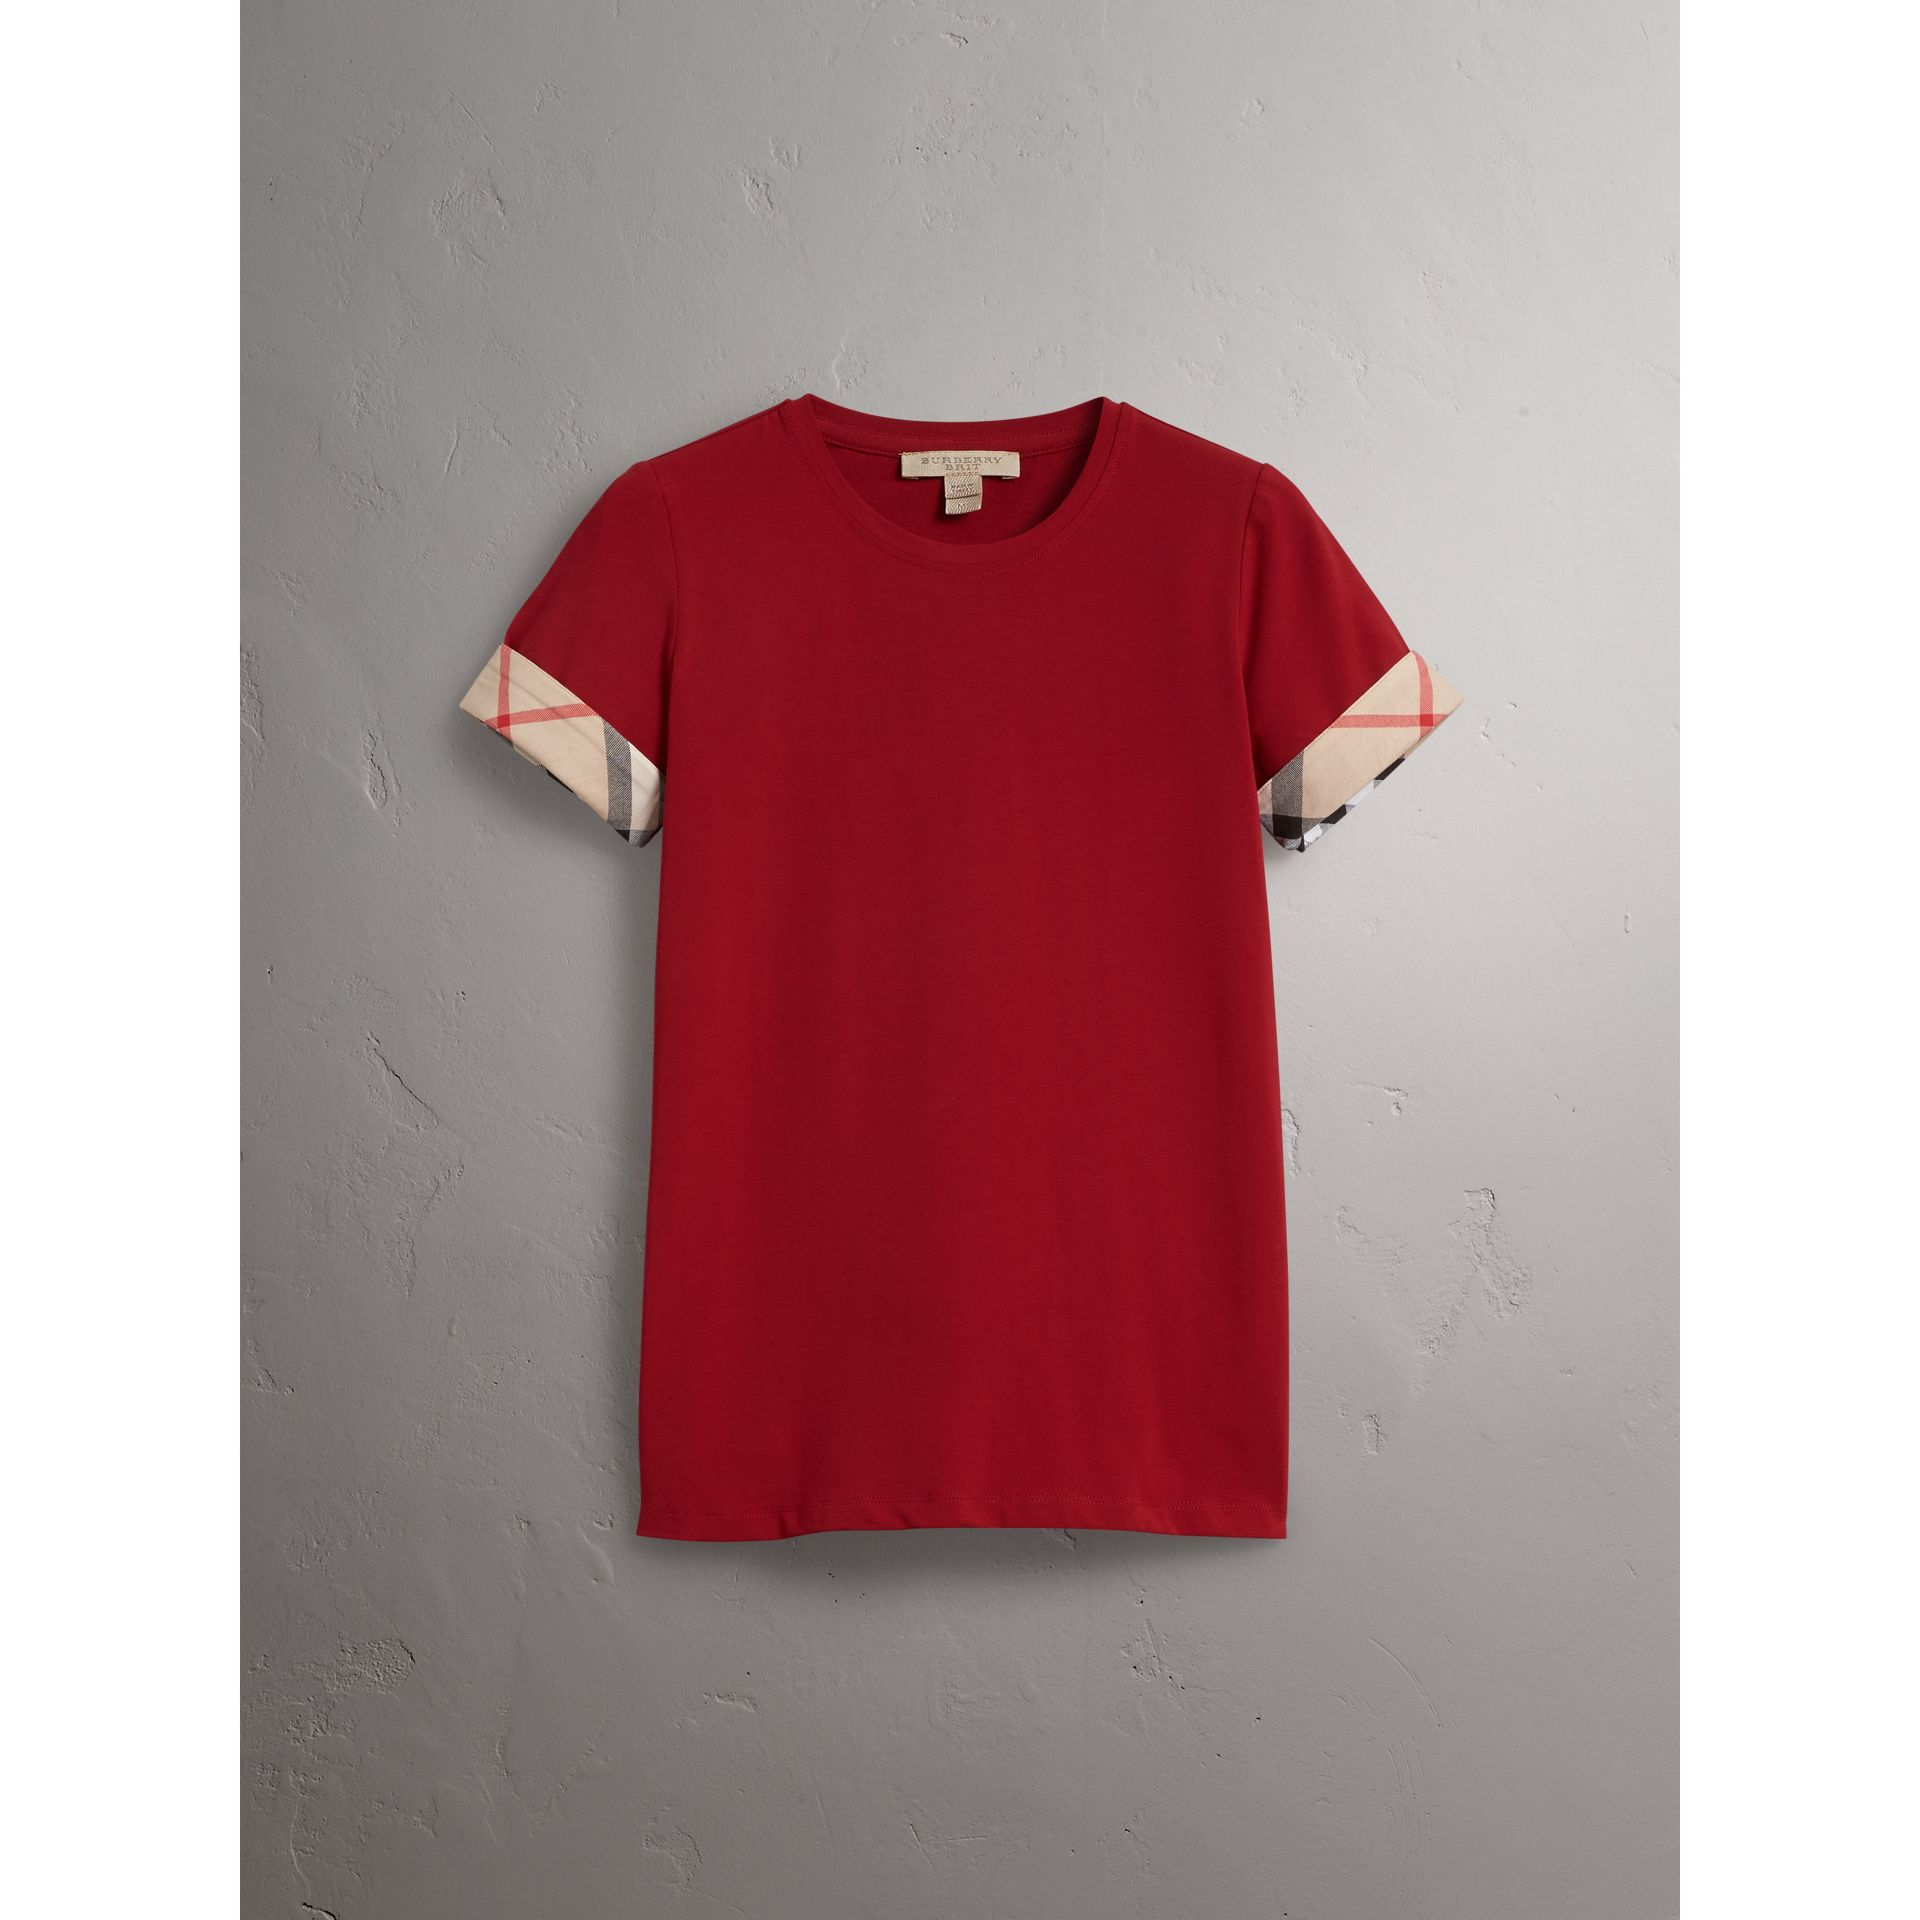 Check Cuff Stretch Cotton T-Shirt in Lacquer Red - Women | Burberry - gallery image 4